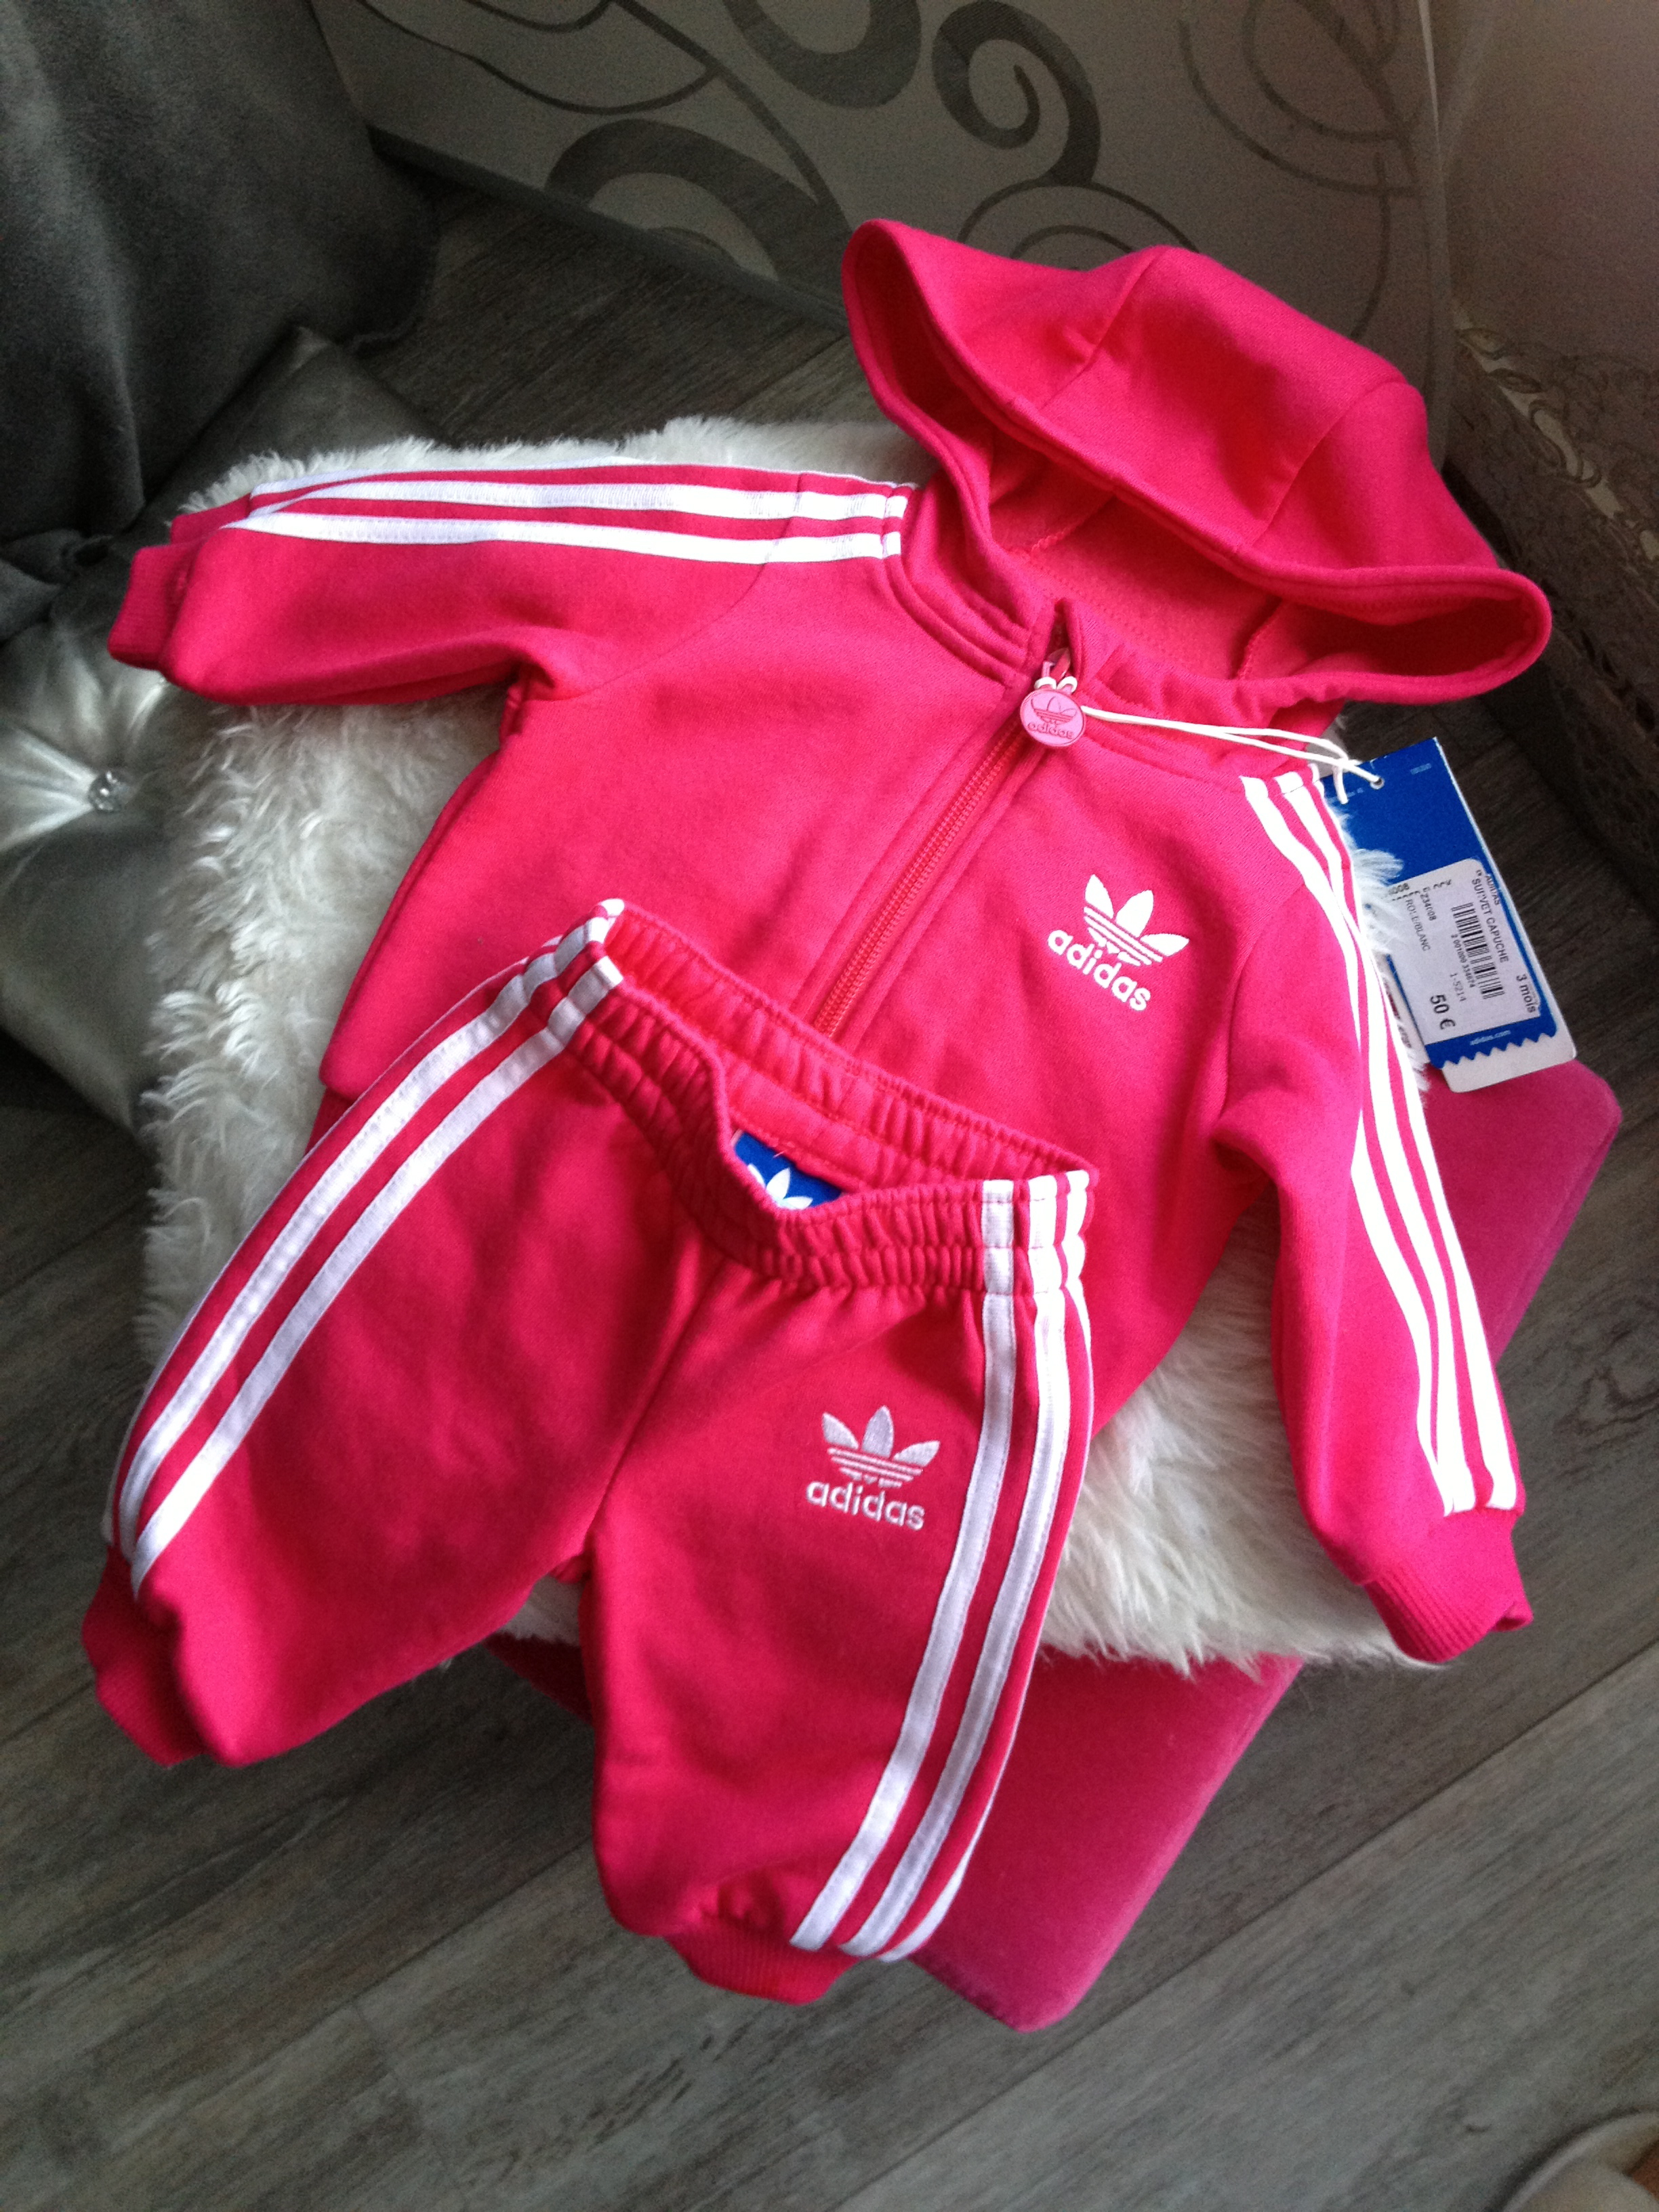 01236d85e2bad survetement adidas bebe noir et or off 60% - www.boulangerie ...